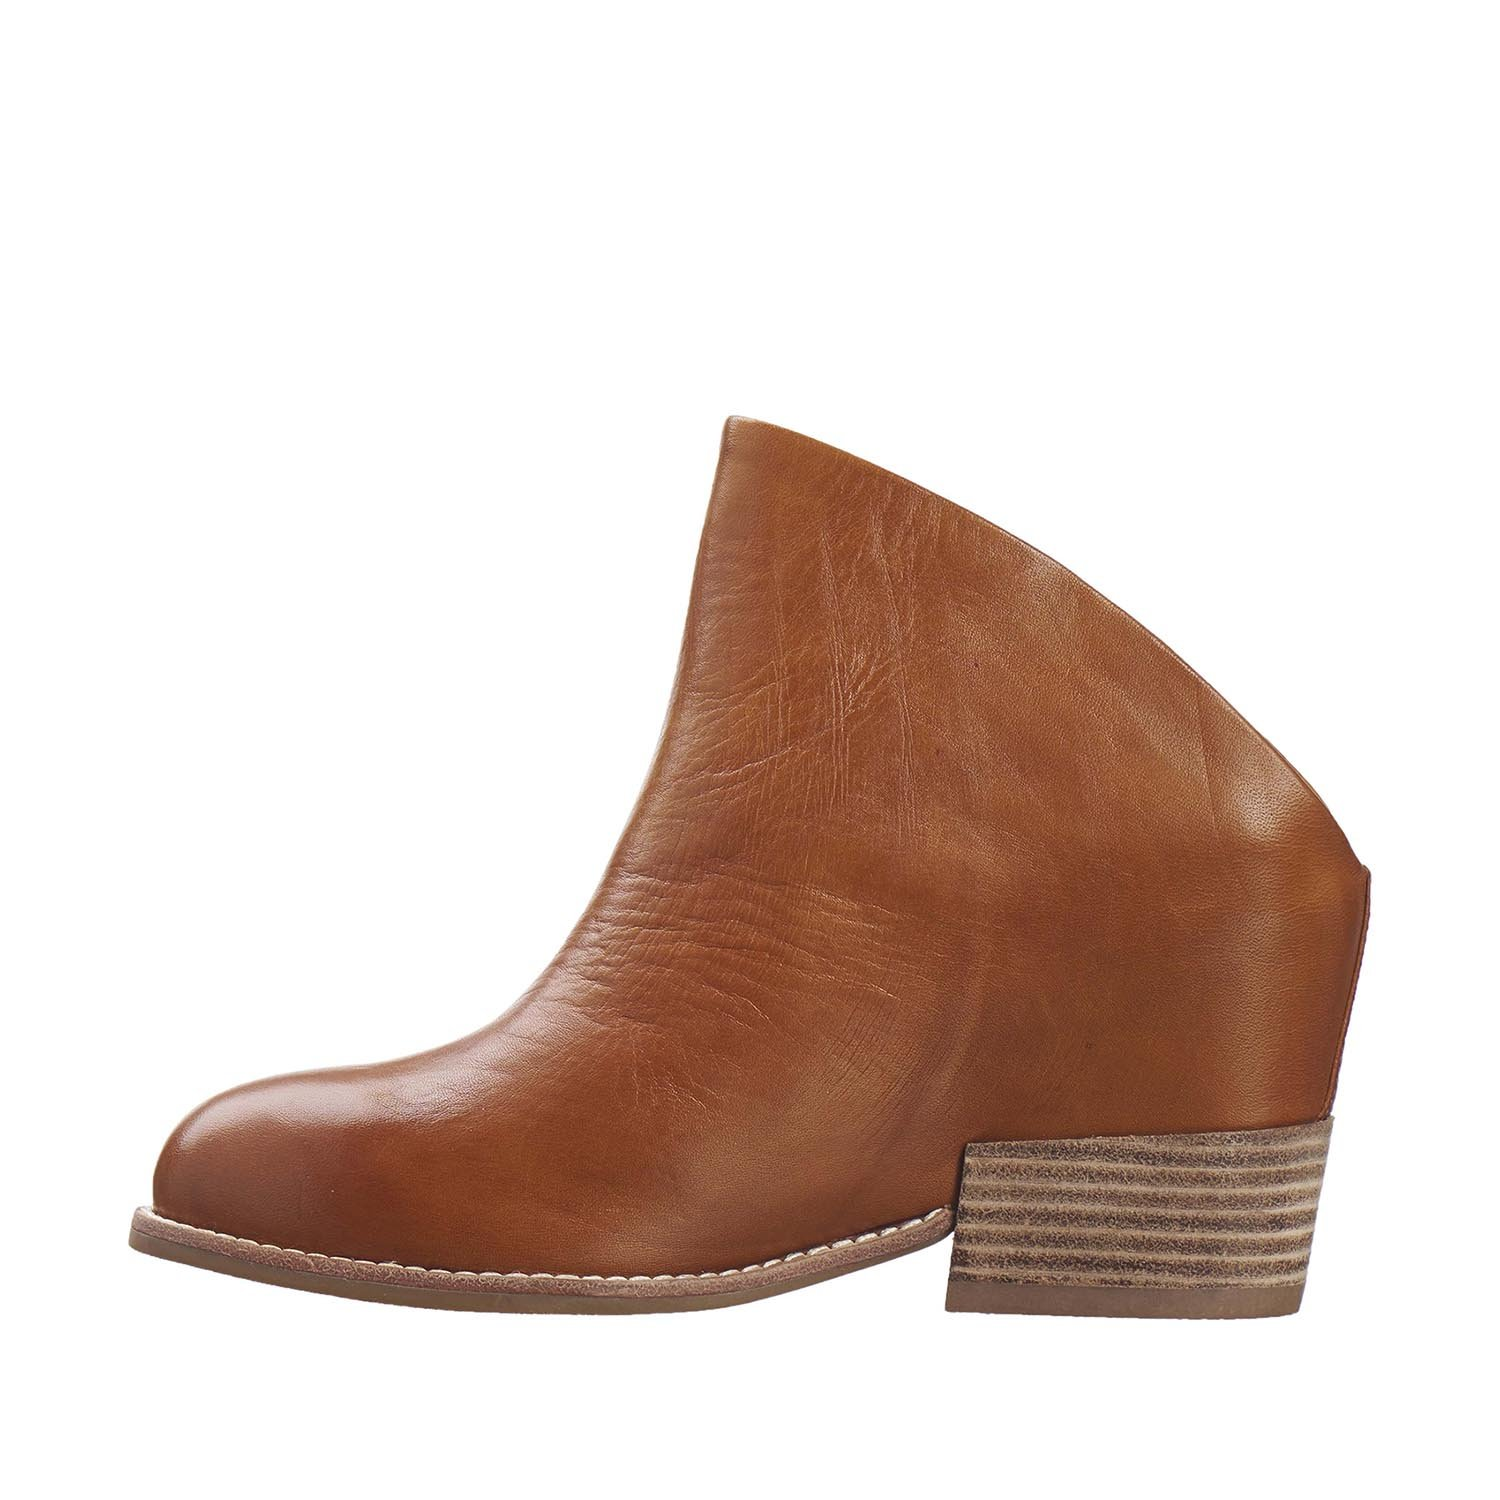 Antelope Women's 760 Leather Clogs